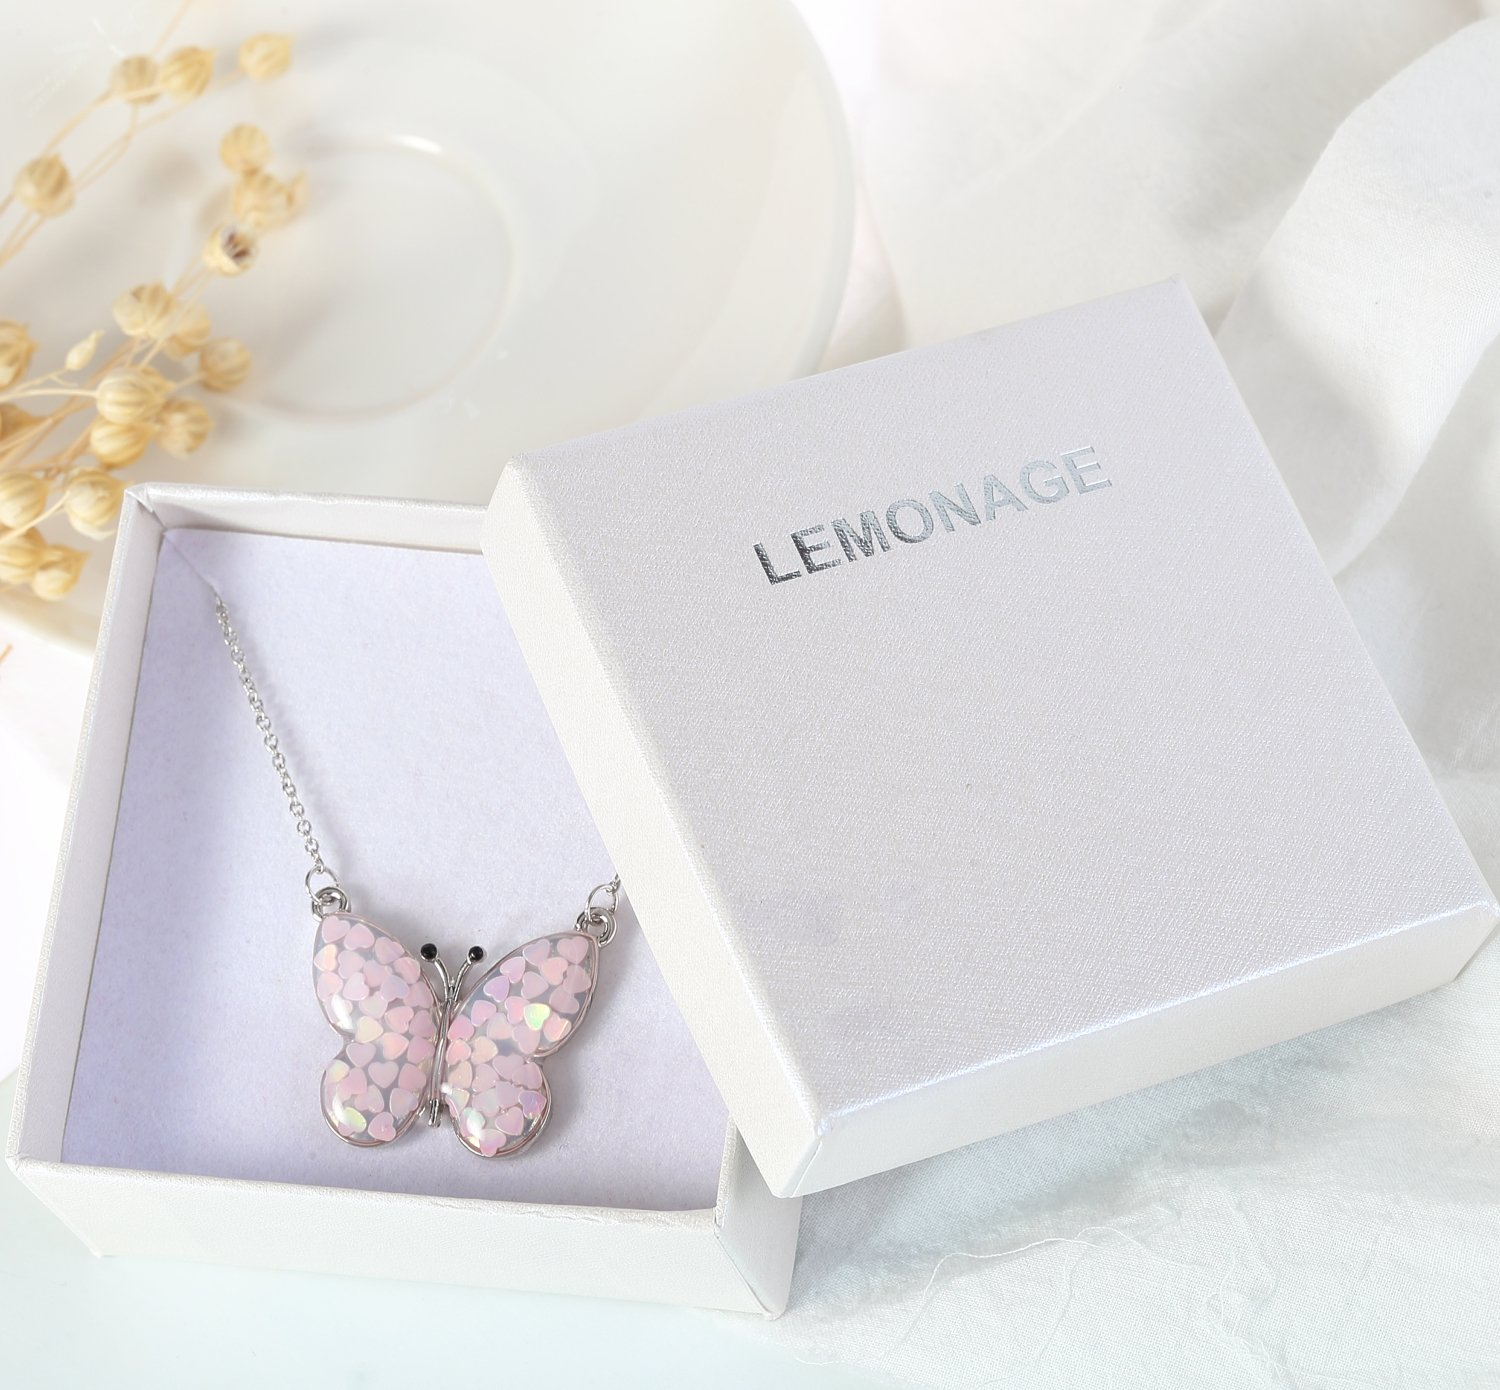 Lemonage Butterfly Necklaces for Girls Kids with Stunning Alloy Pendant Necklace, Children 3+ (Pink) by Lemonage (Image #7)